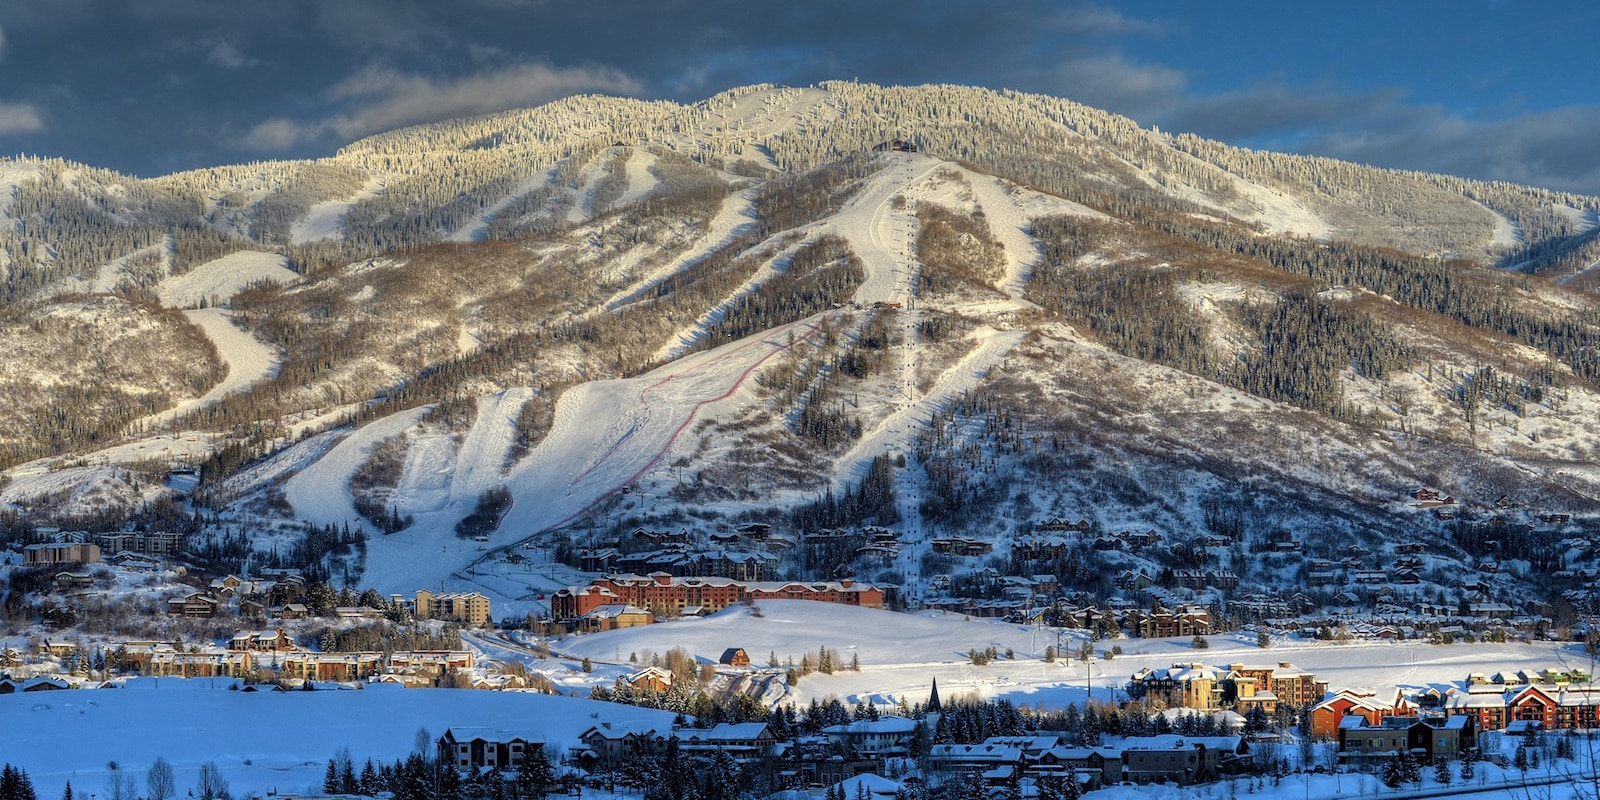 Image of ski trails at Steamboat Resort in Colorado